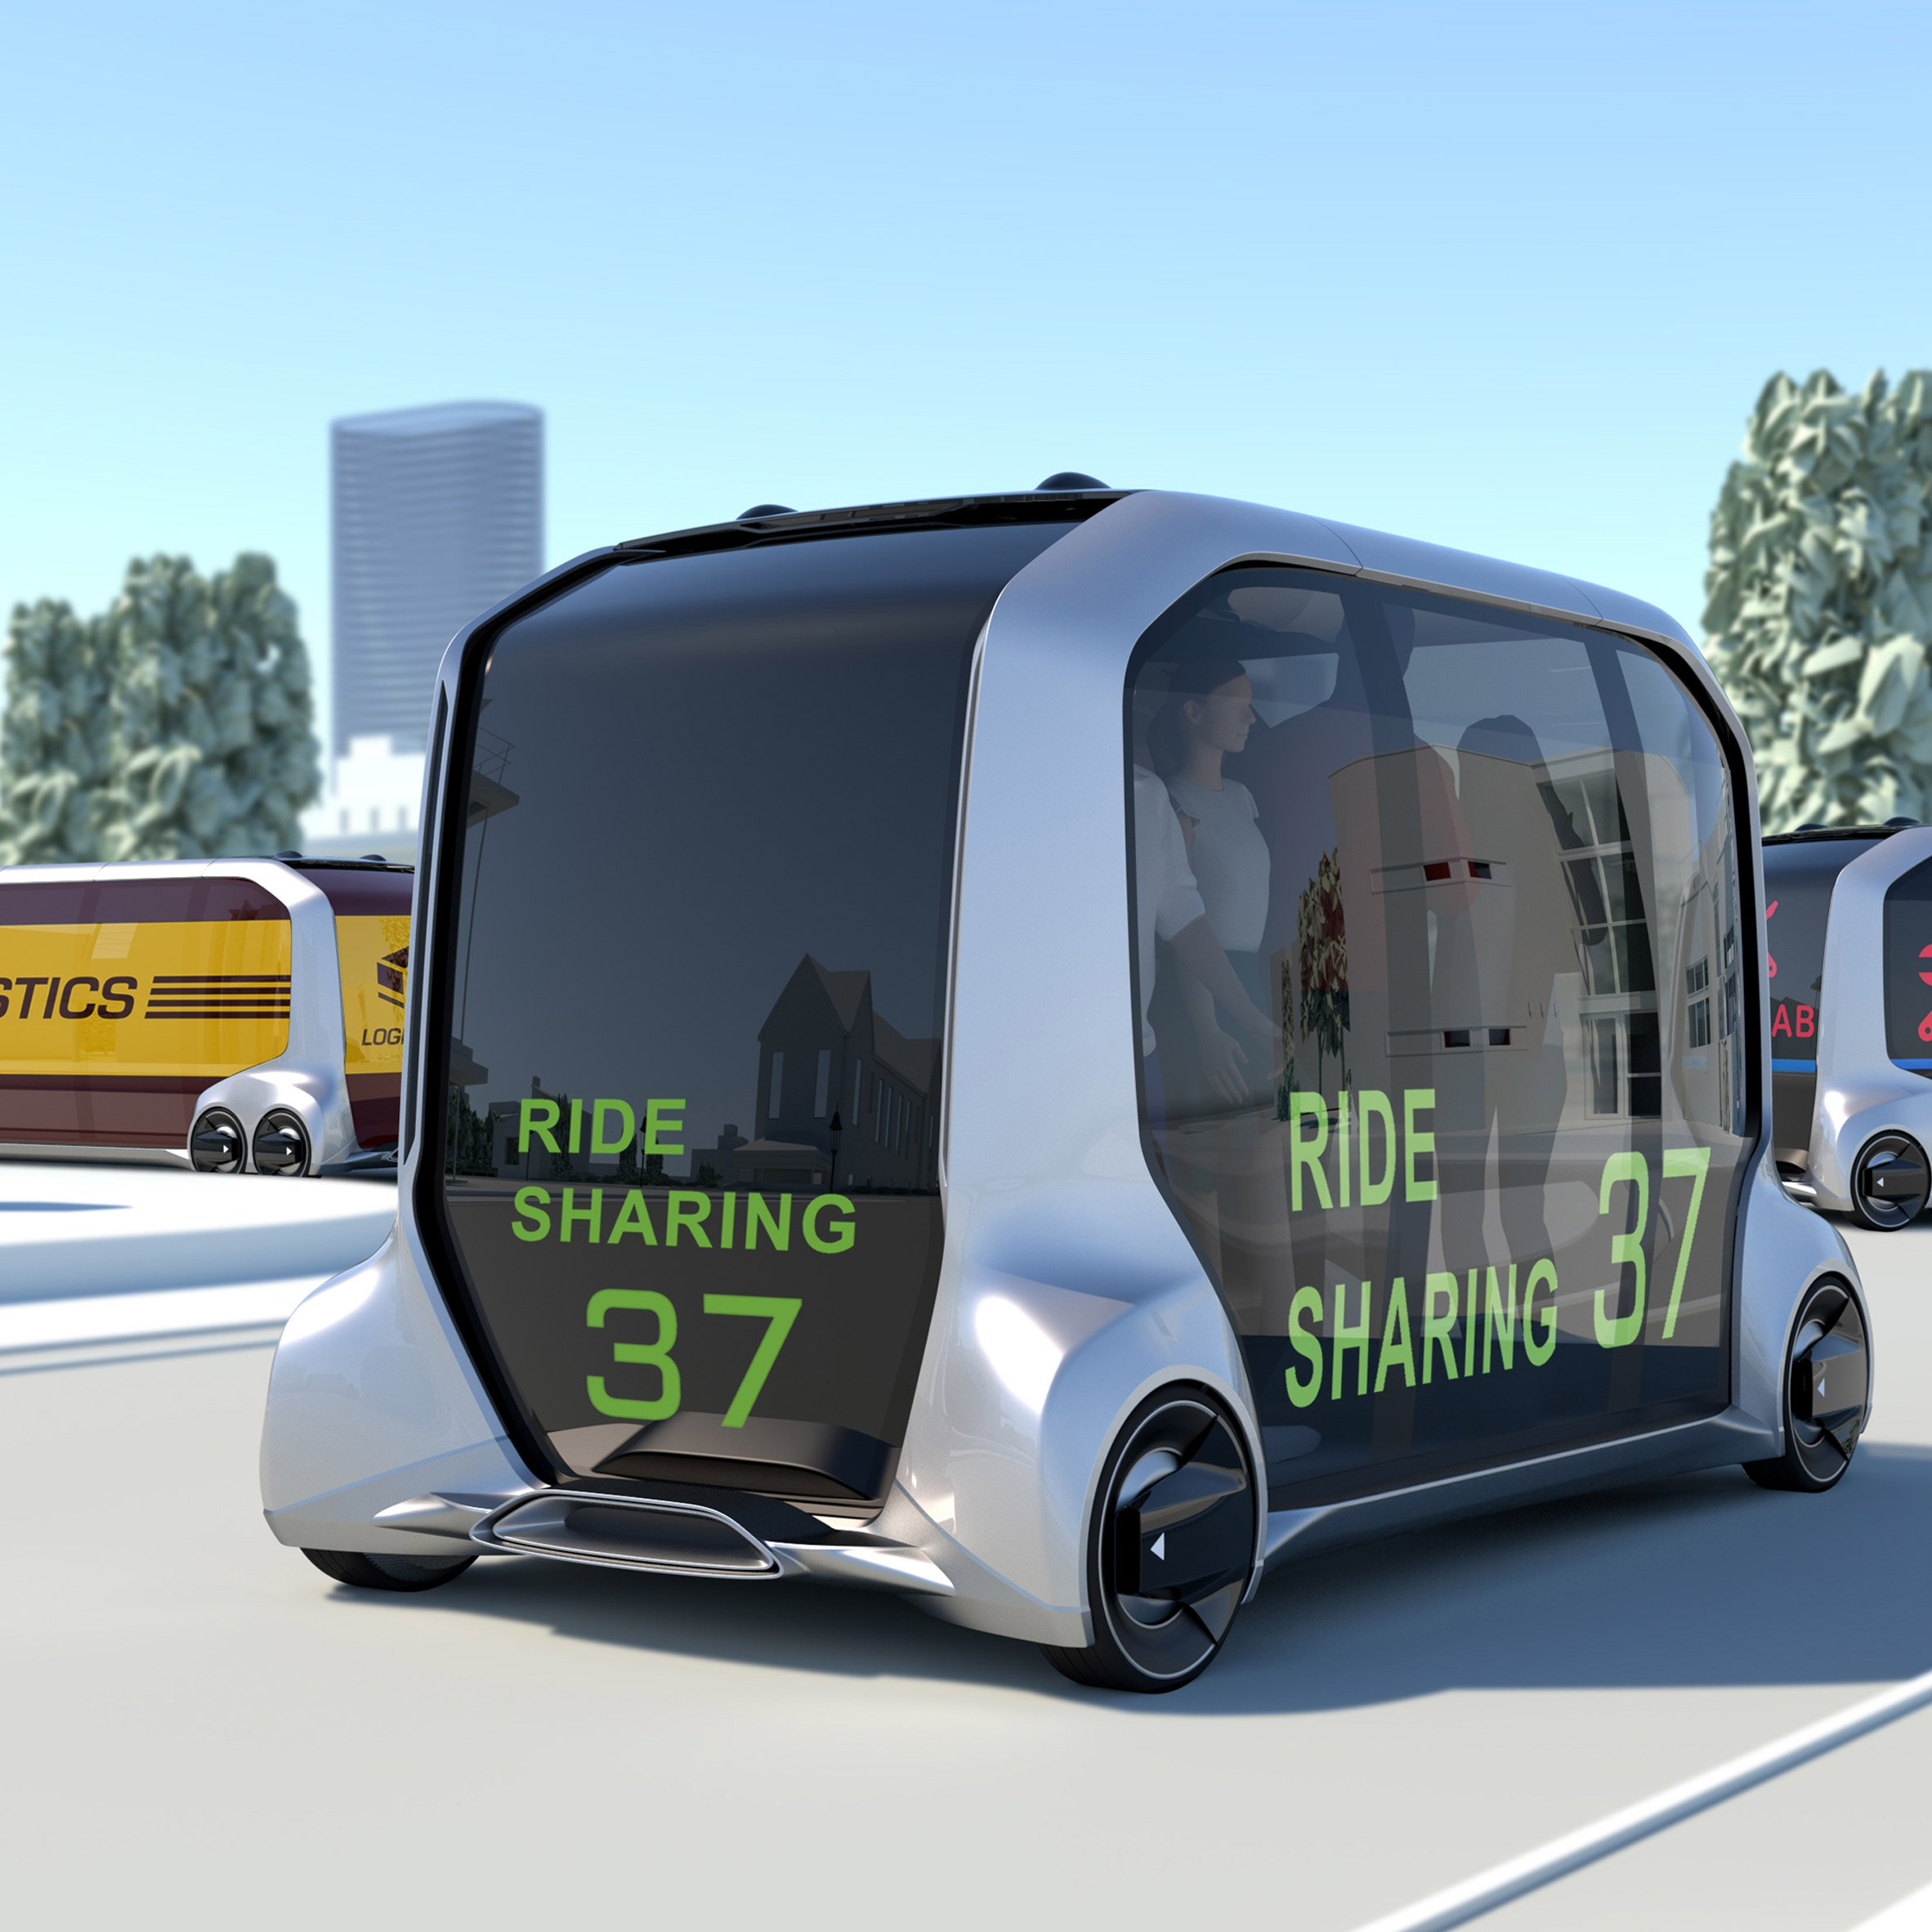 toyota reveals vision for driverless vehicles that switch function